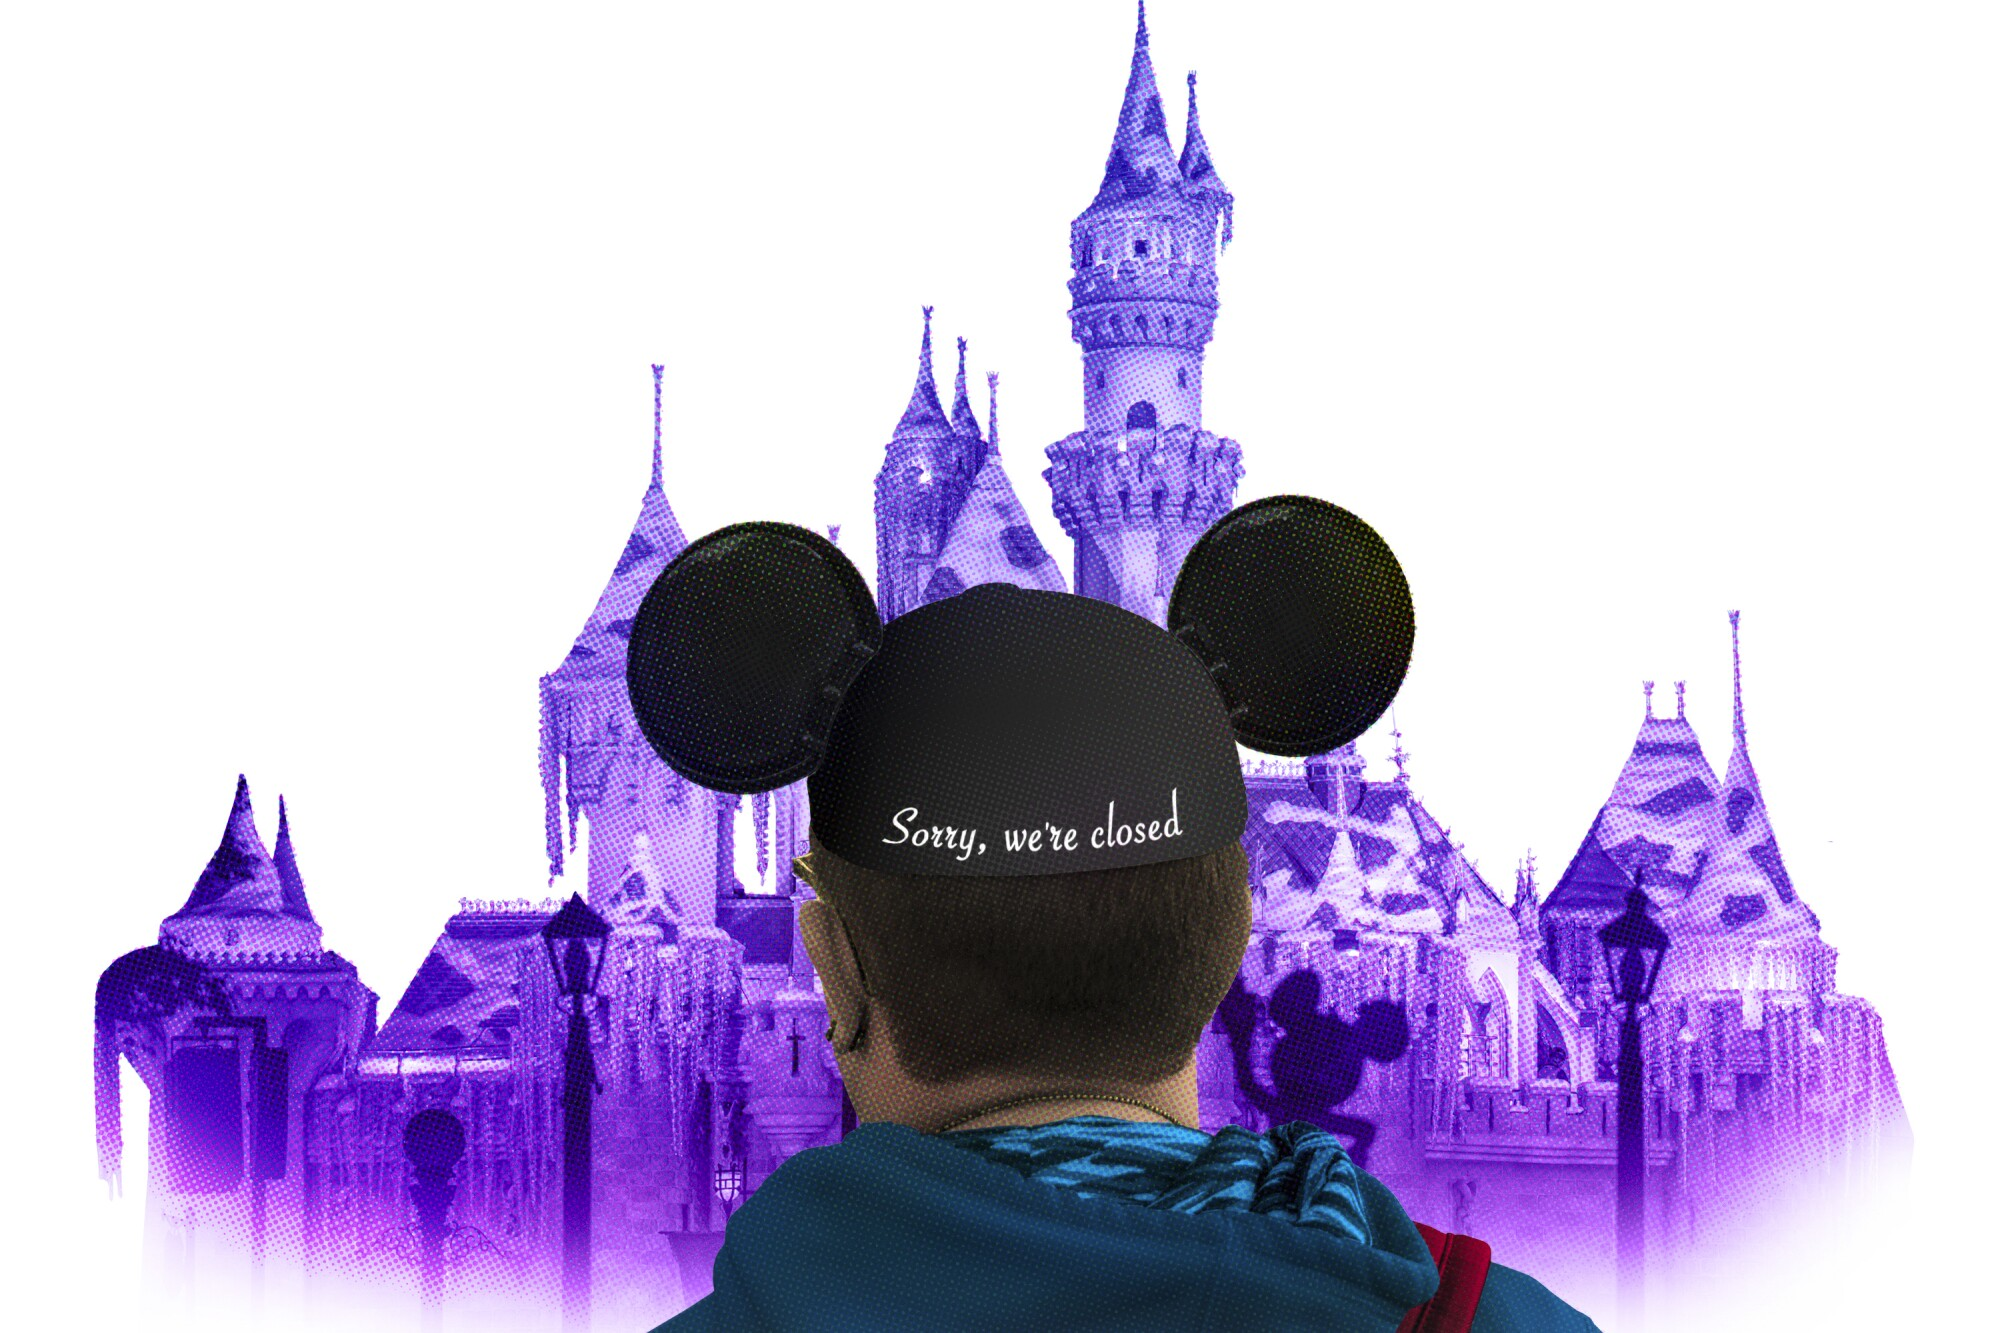 """A photo illustration shows the back of a mouse-ears cap with """"Sorry, we're closed"""" stitched on it."""